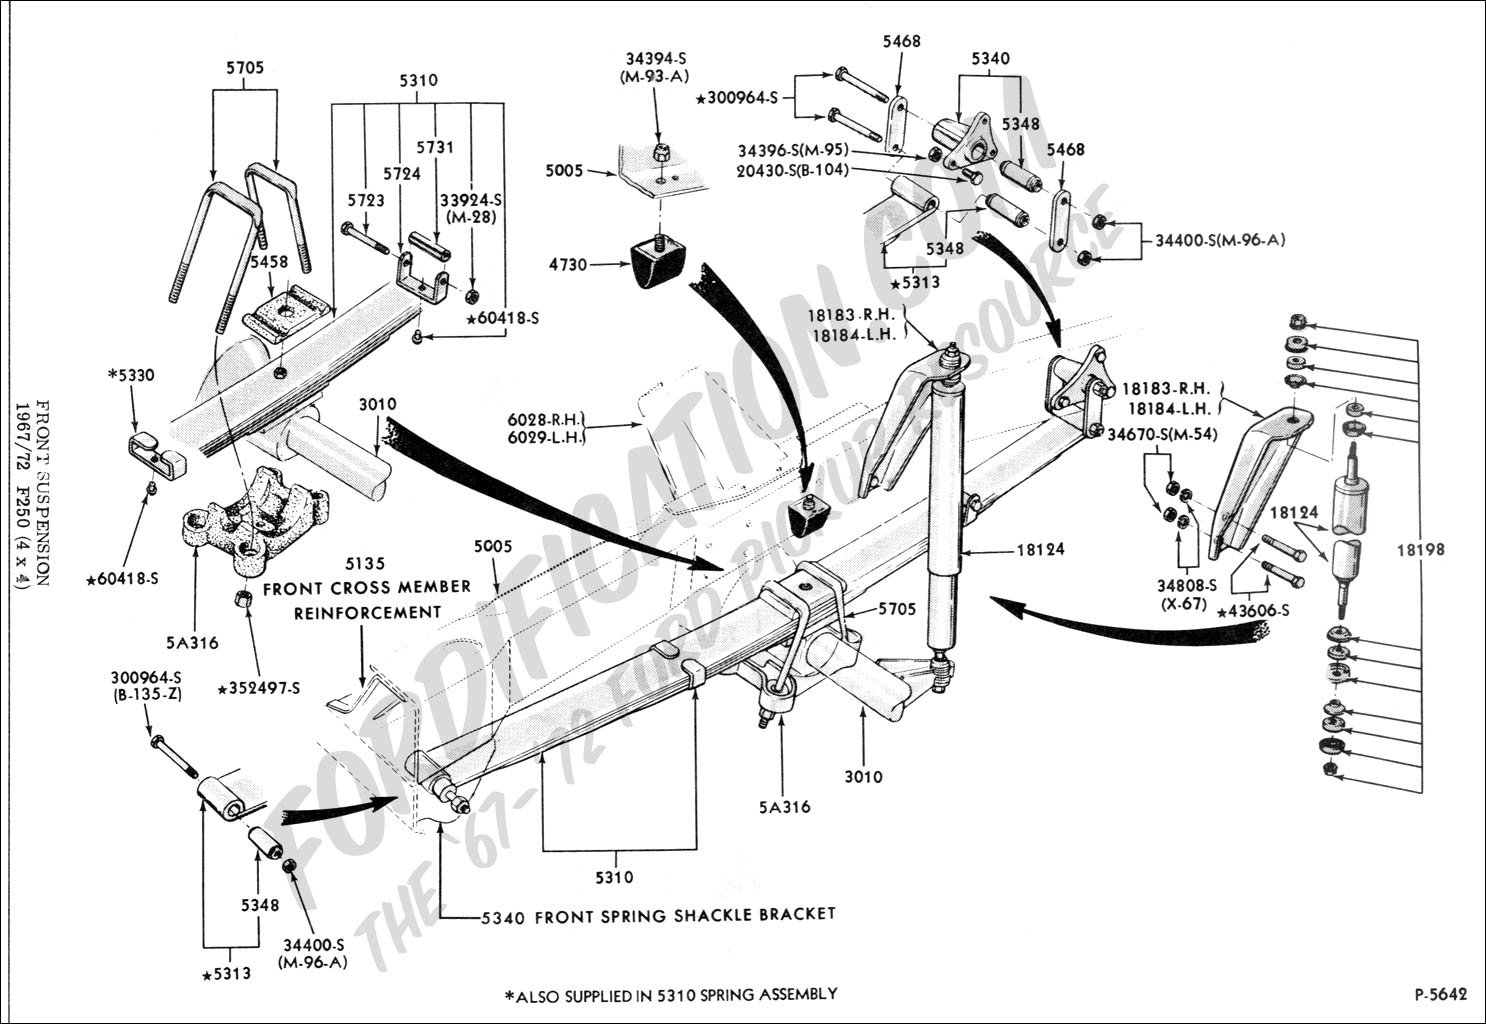 2014 ford taurus fuse diagram 1996 f150 front suspension diagram autos weblog #1